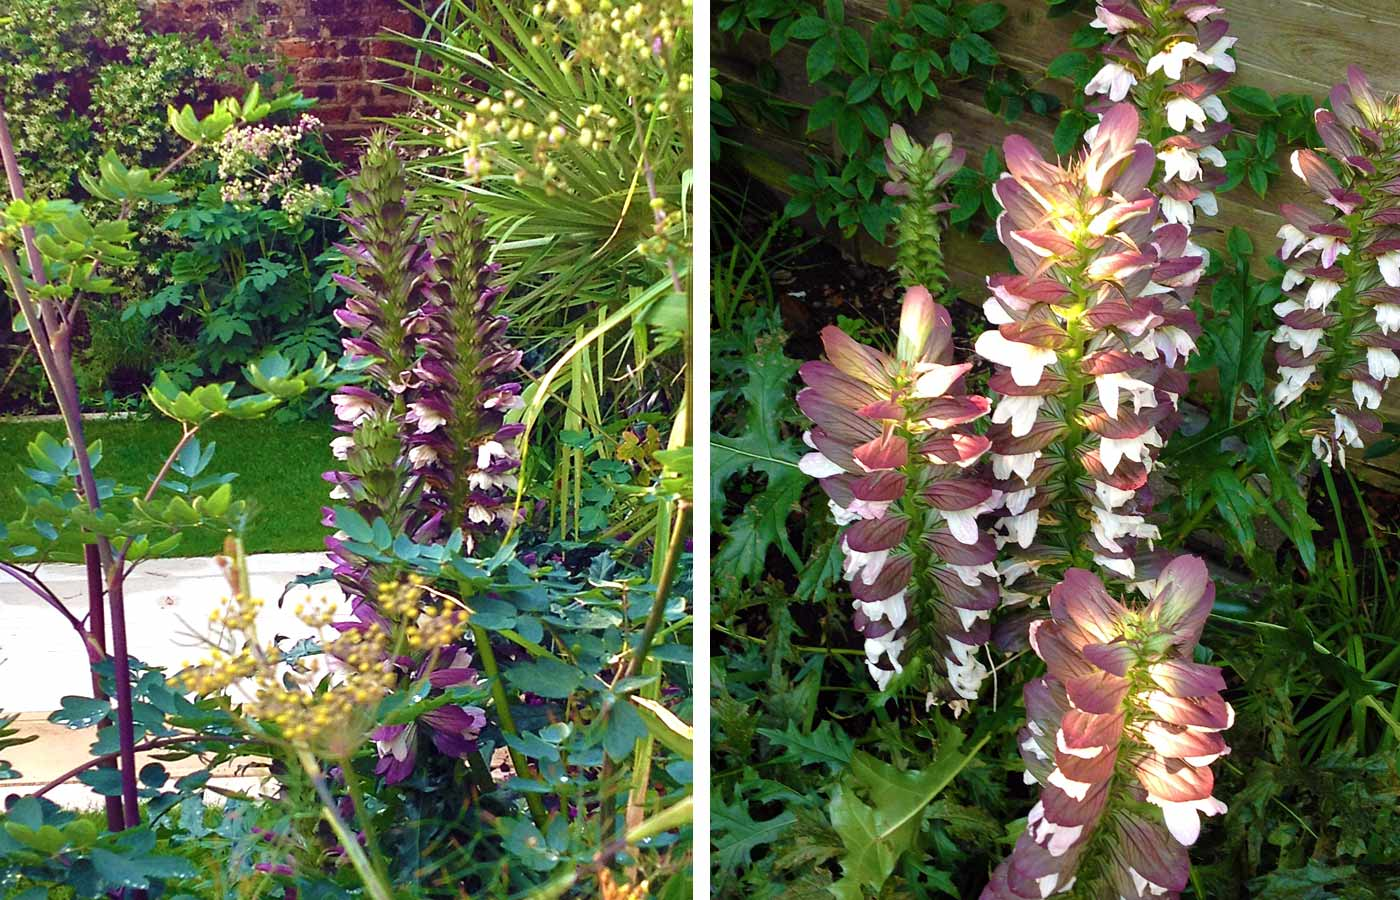 Acanthus, thalictrum and fennel